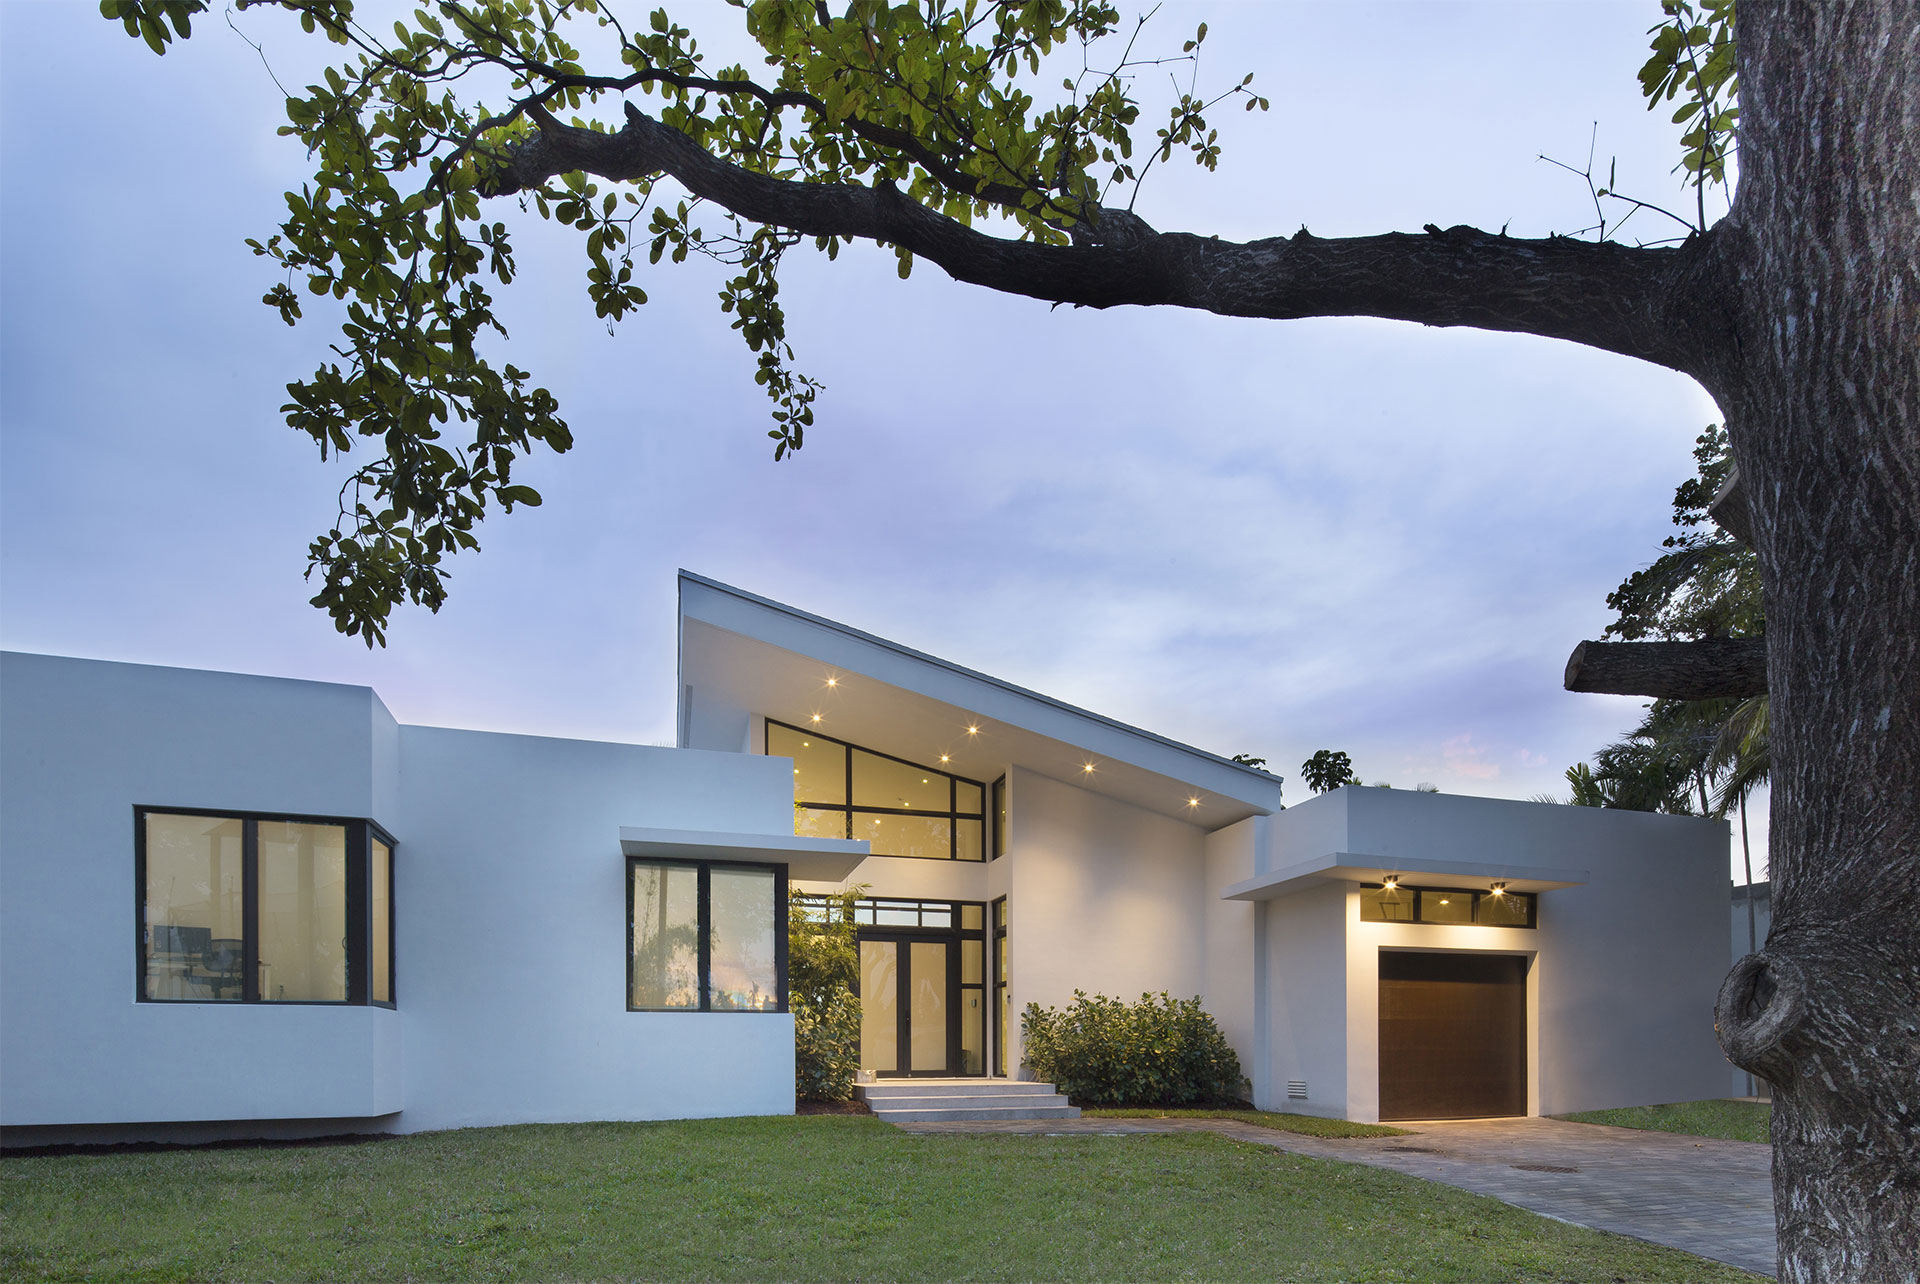 Architecture project in Sky Lake I, Florida